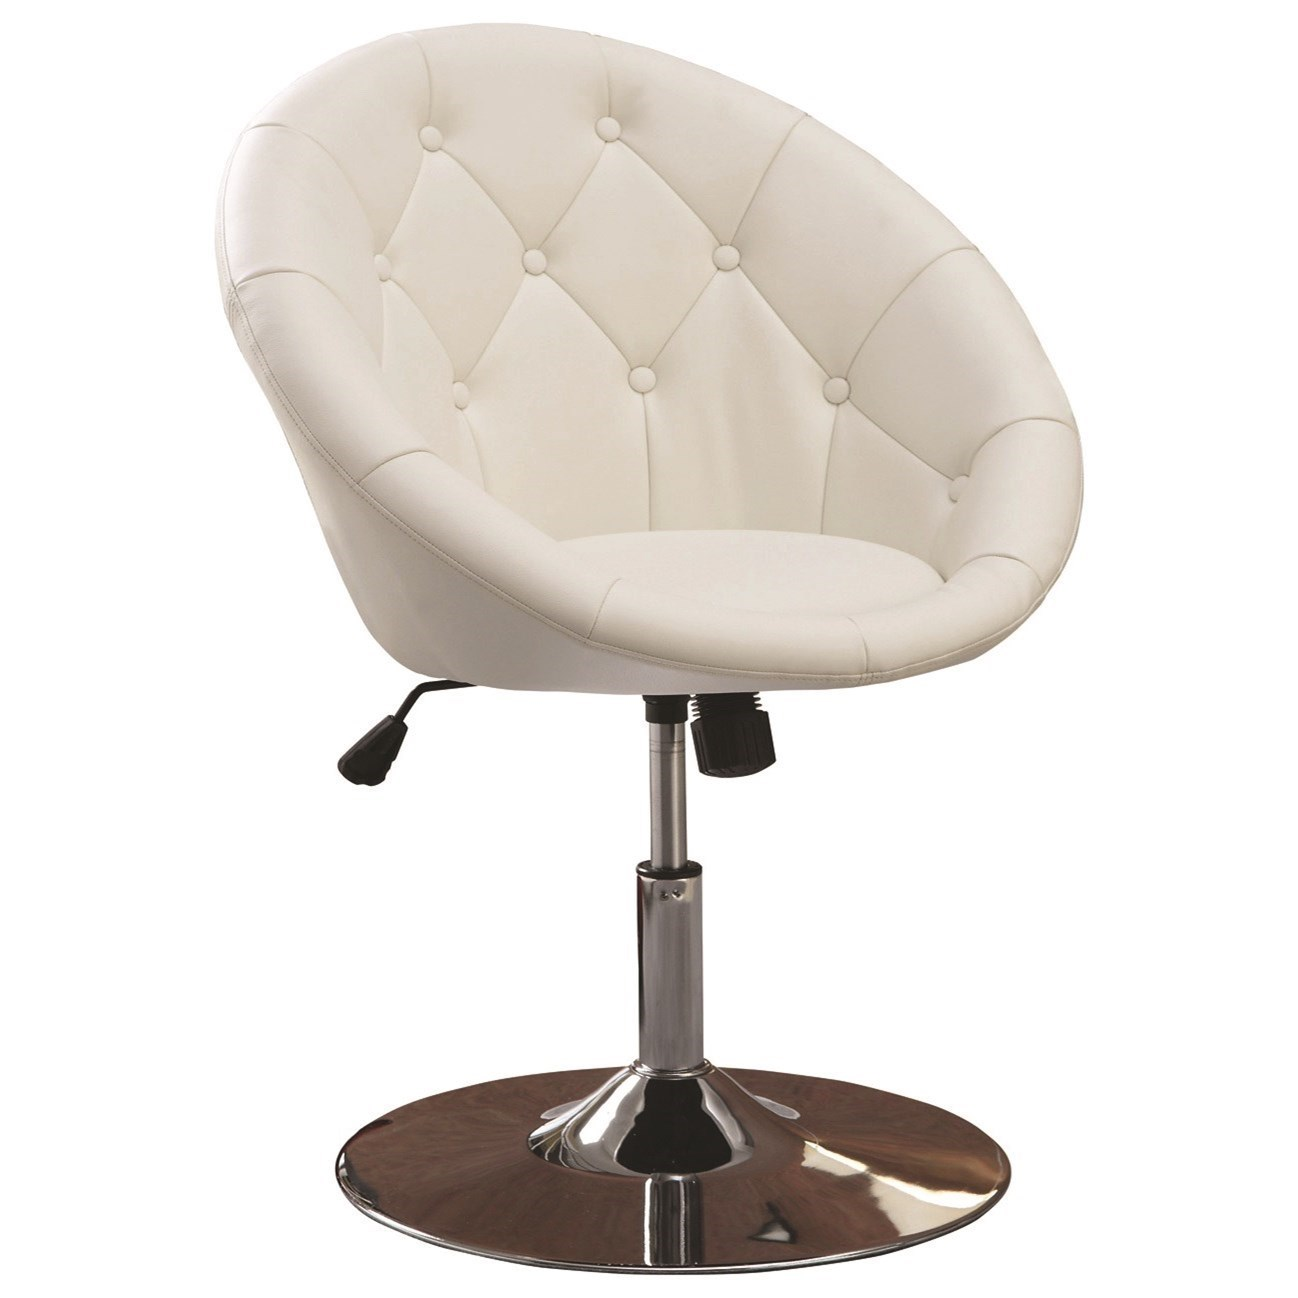 Coaster Dining Chairs and Bar Stools Contemporary Round Tufted White Swivel Chair - Coaster Fine Furniture  sc 1 st  Coaster Fine Furniture & Coaster Dining Chairs and Bar Stools Contemporary Round Tufted White ...